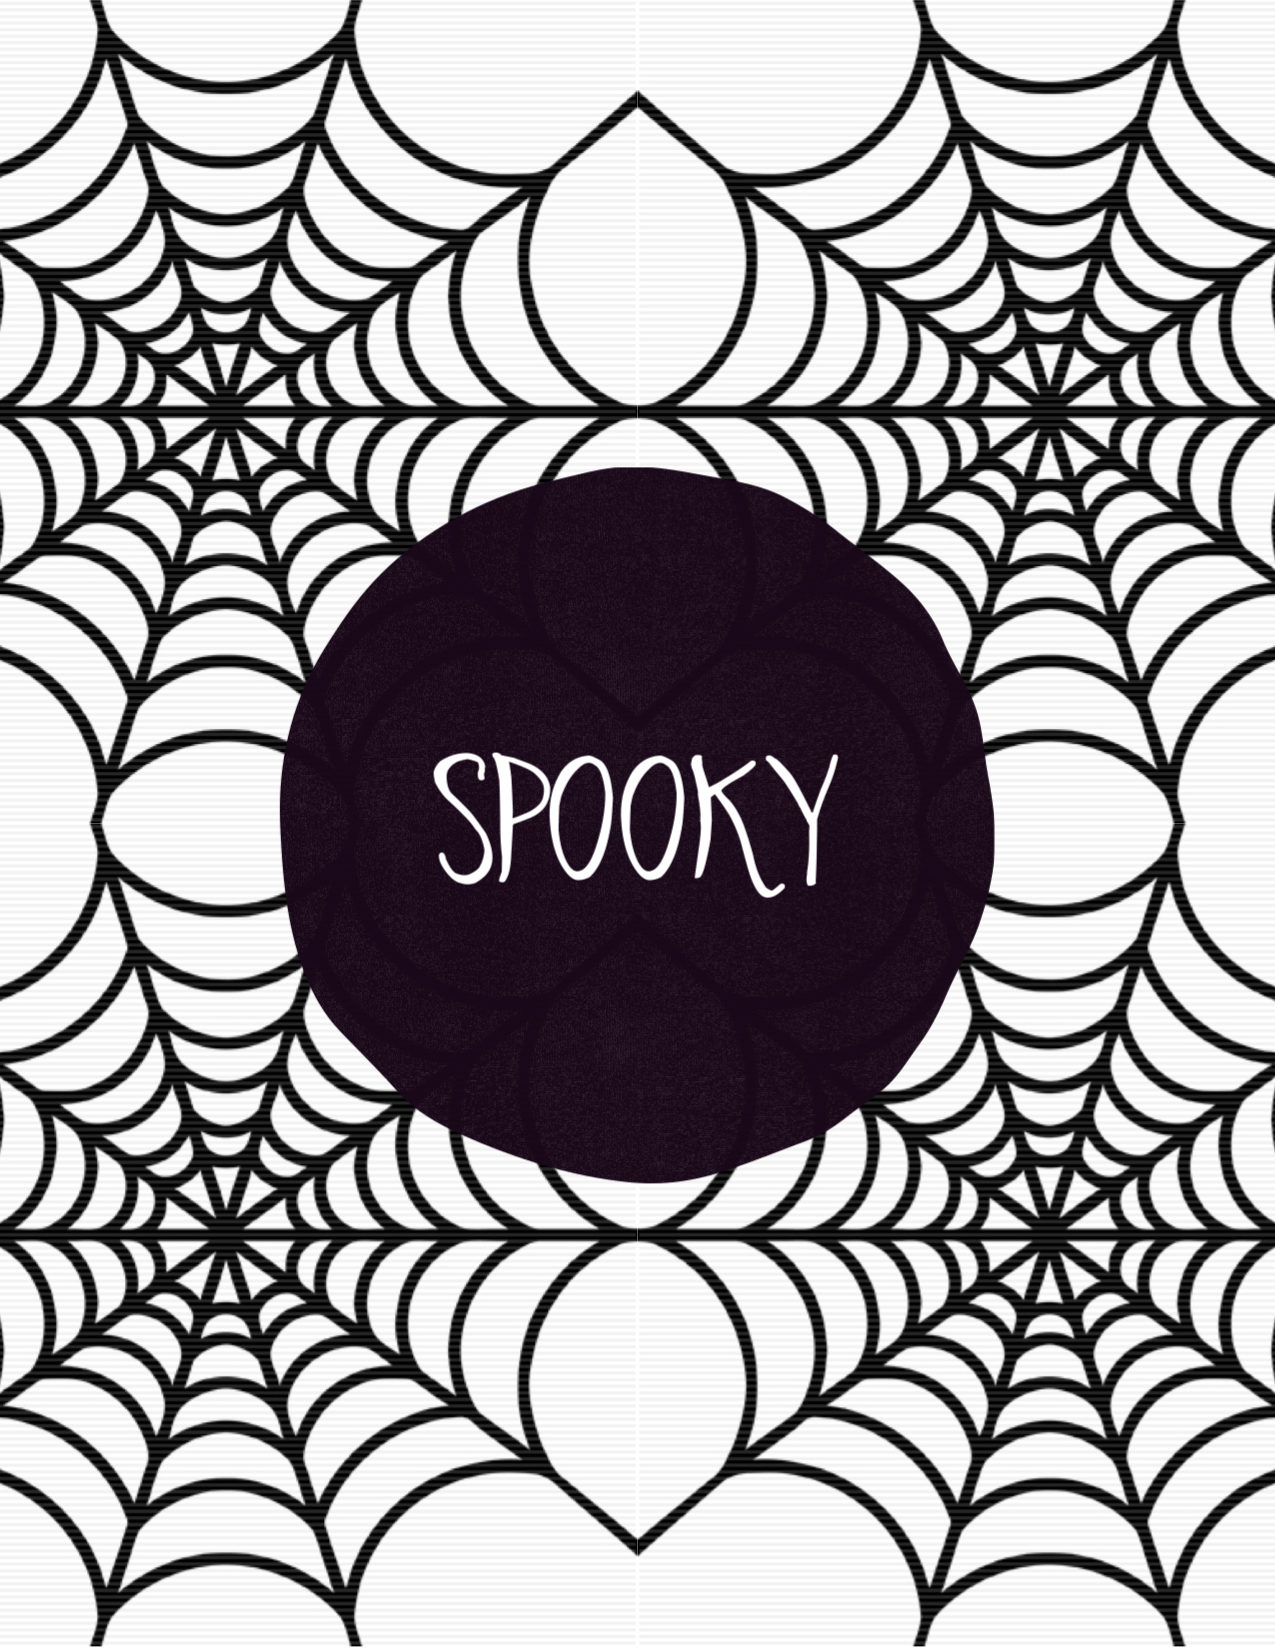 spooky halloween spider web free printable paper trail design